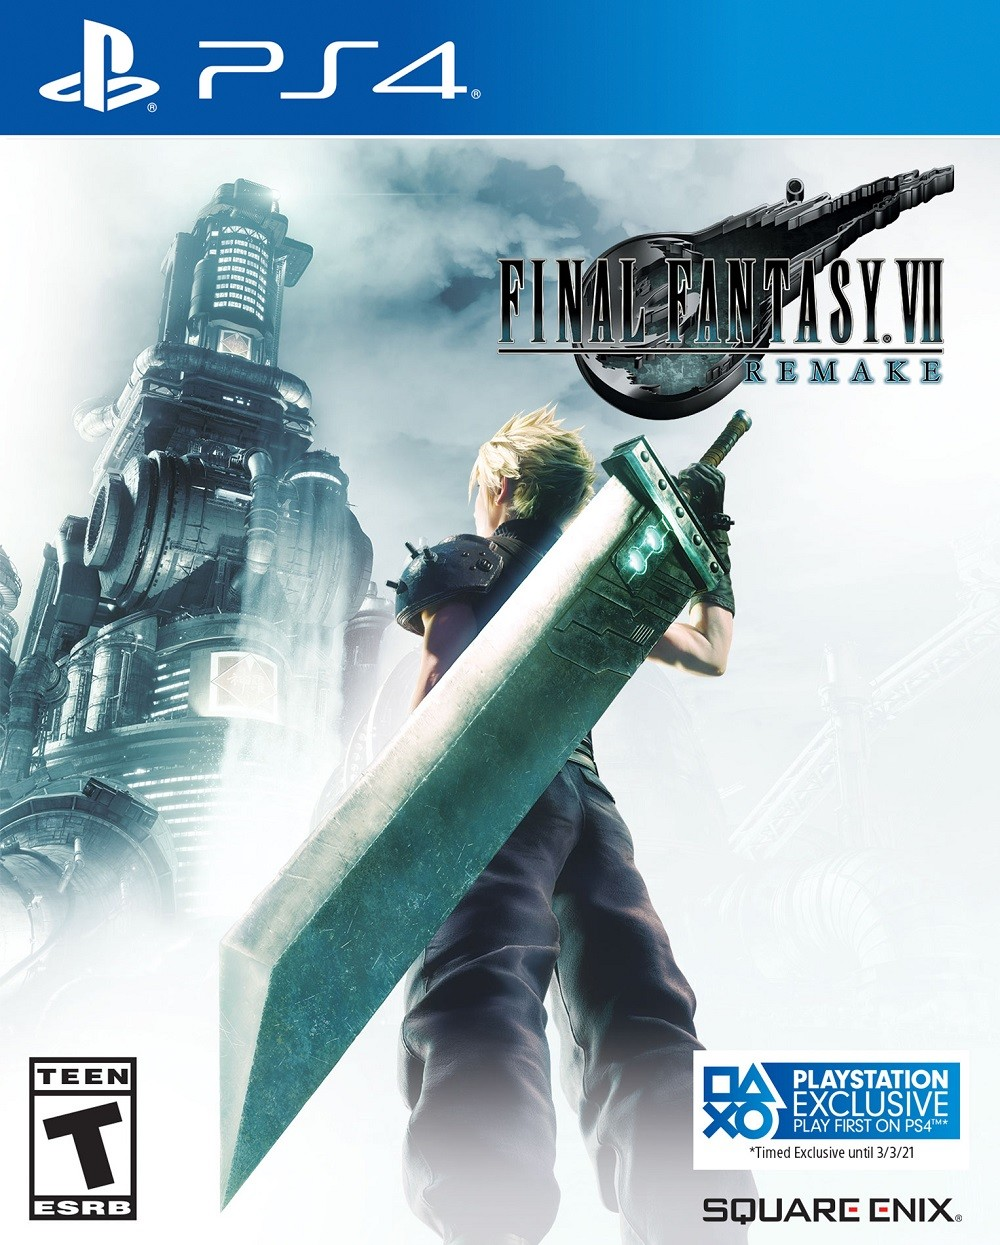 final-fantasy-vii-remake-xbox-pc-ps4-timed